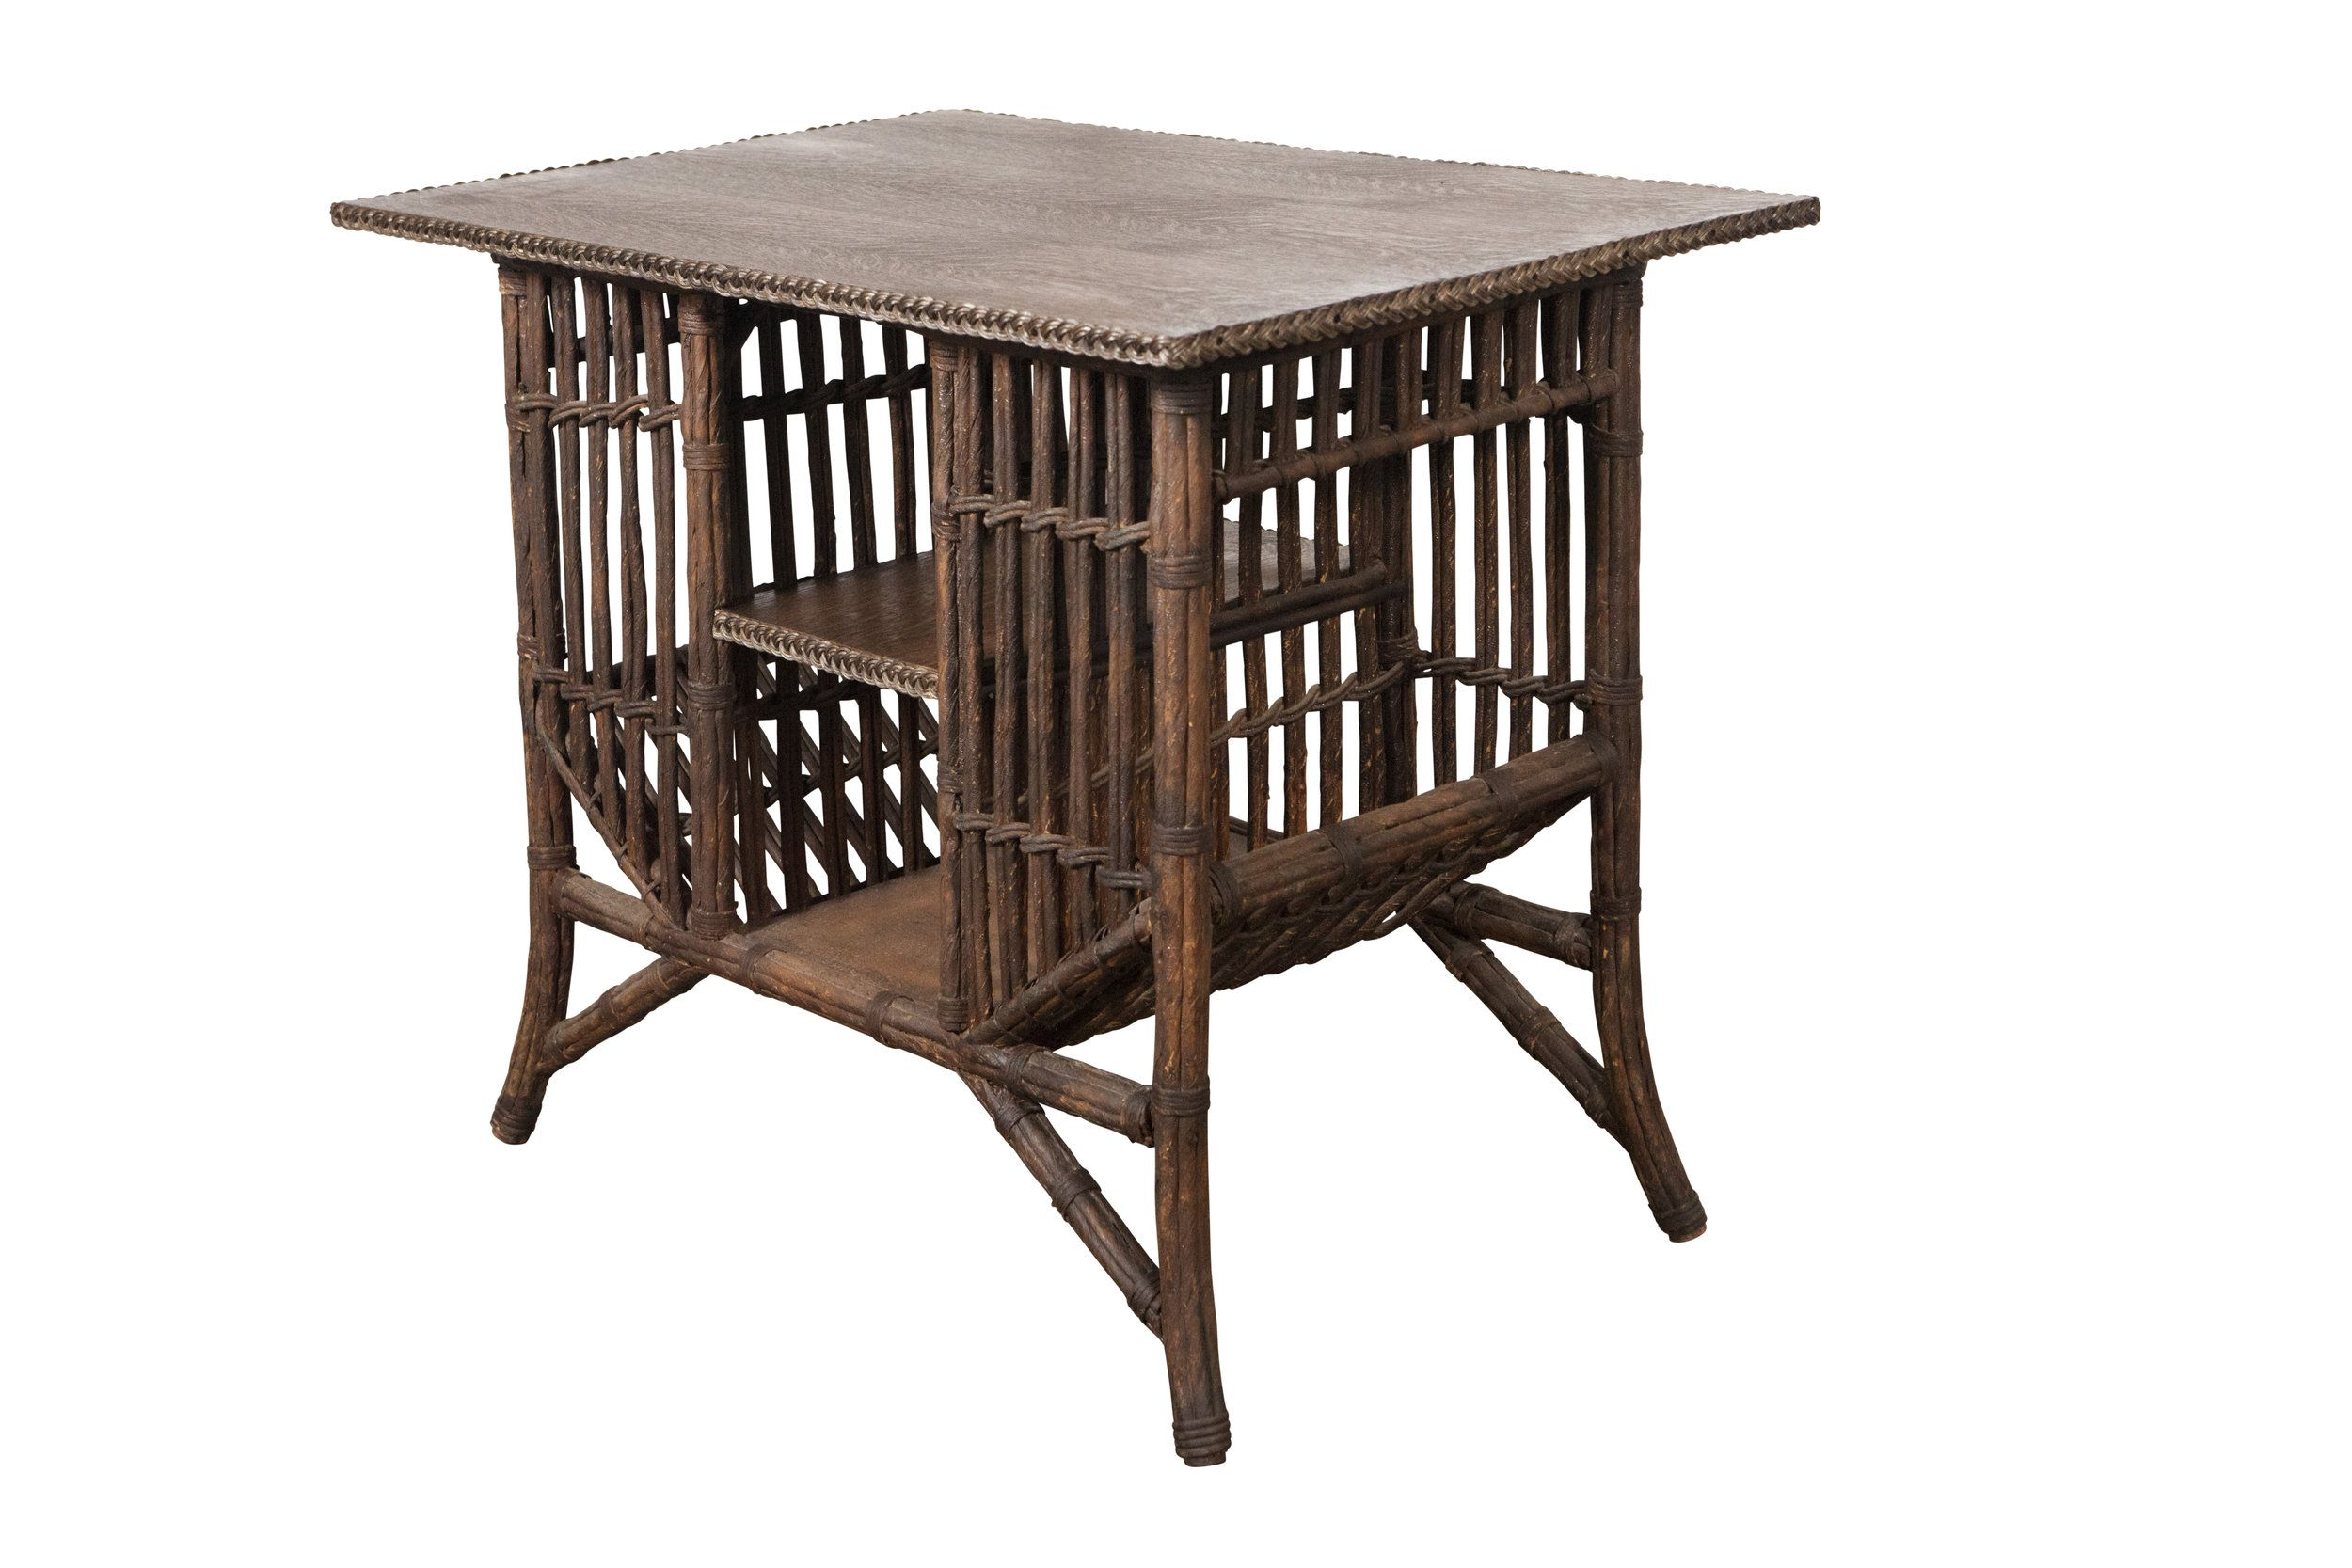 Lloyd Loom Stick Wicker Style Table with Storage | SIDE TABLES ...